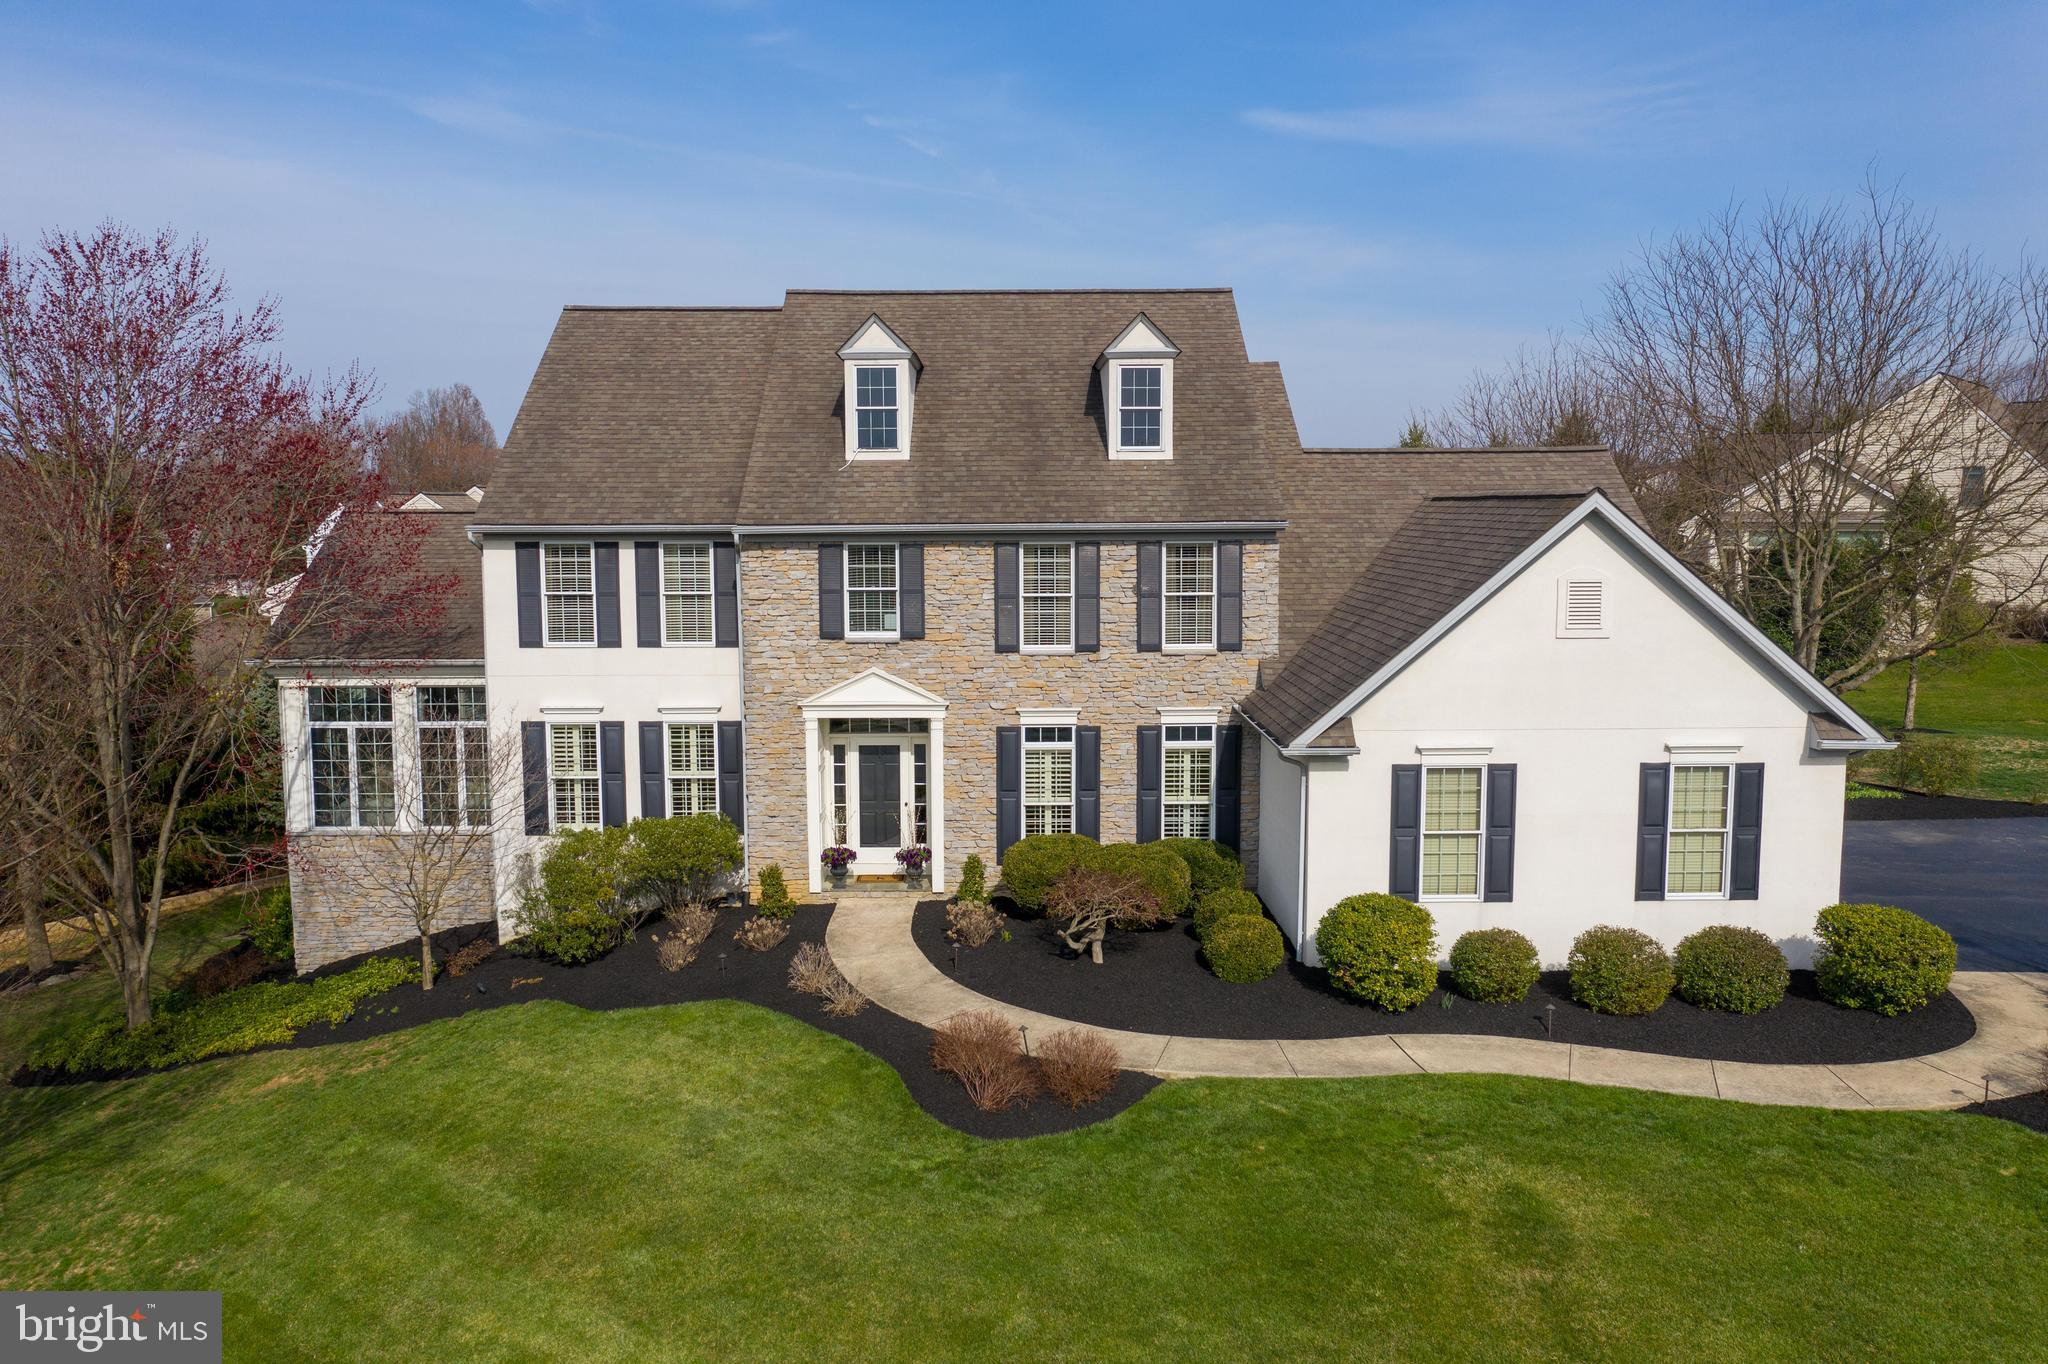 2147 MEADOW RIDGE DRIVE, LANCASTER, PA 17601